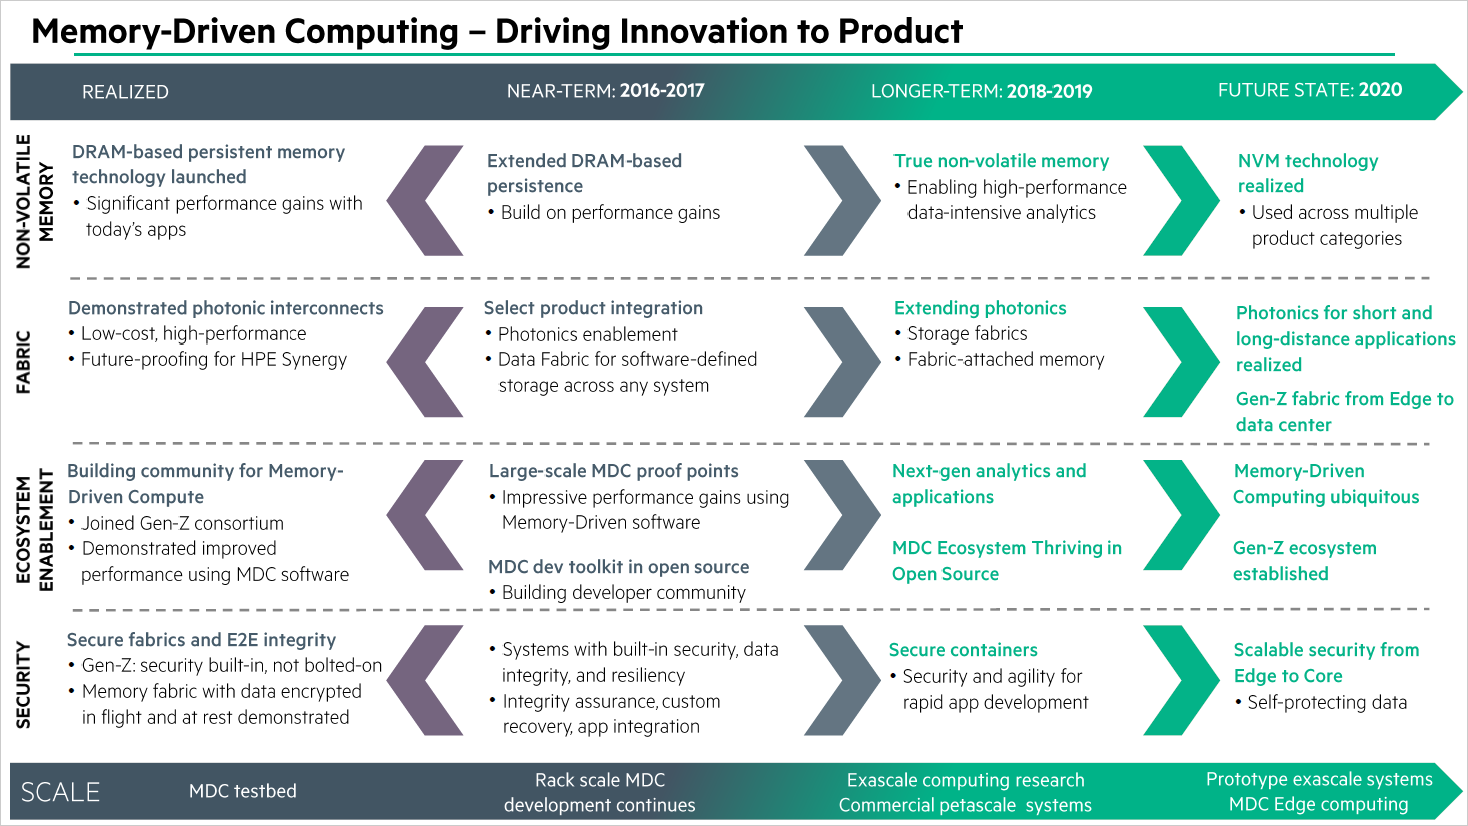 Memory-Driven Computing: HPE zeigt Prototyp von The Machine - Roadmap bis 2020 (Bild: HPE)